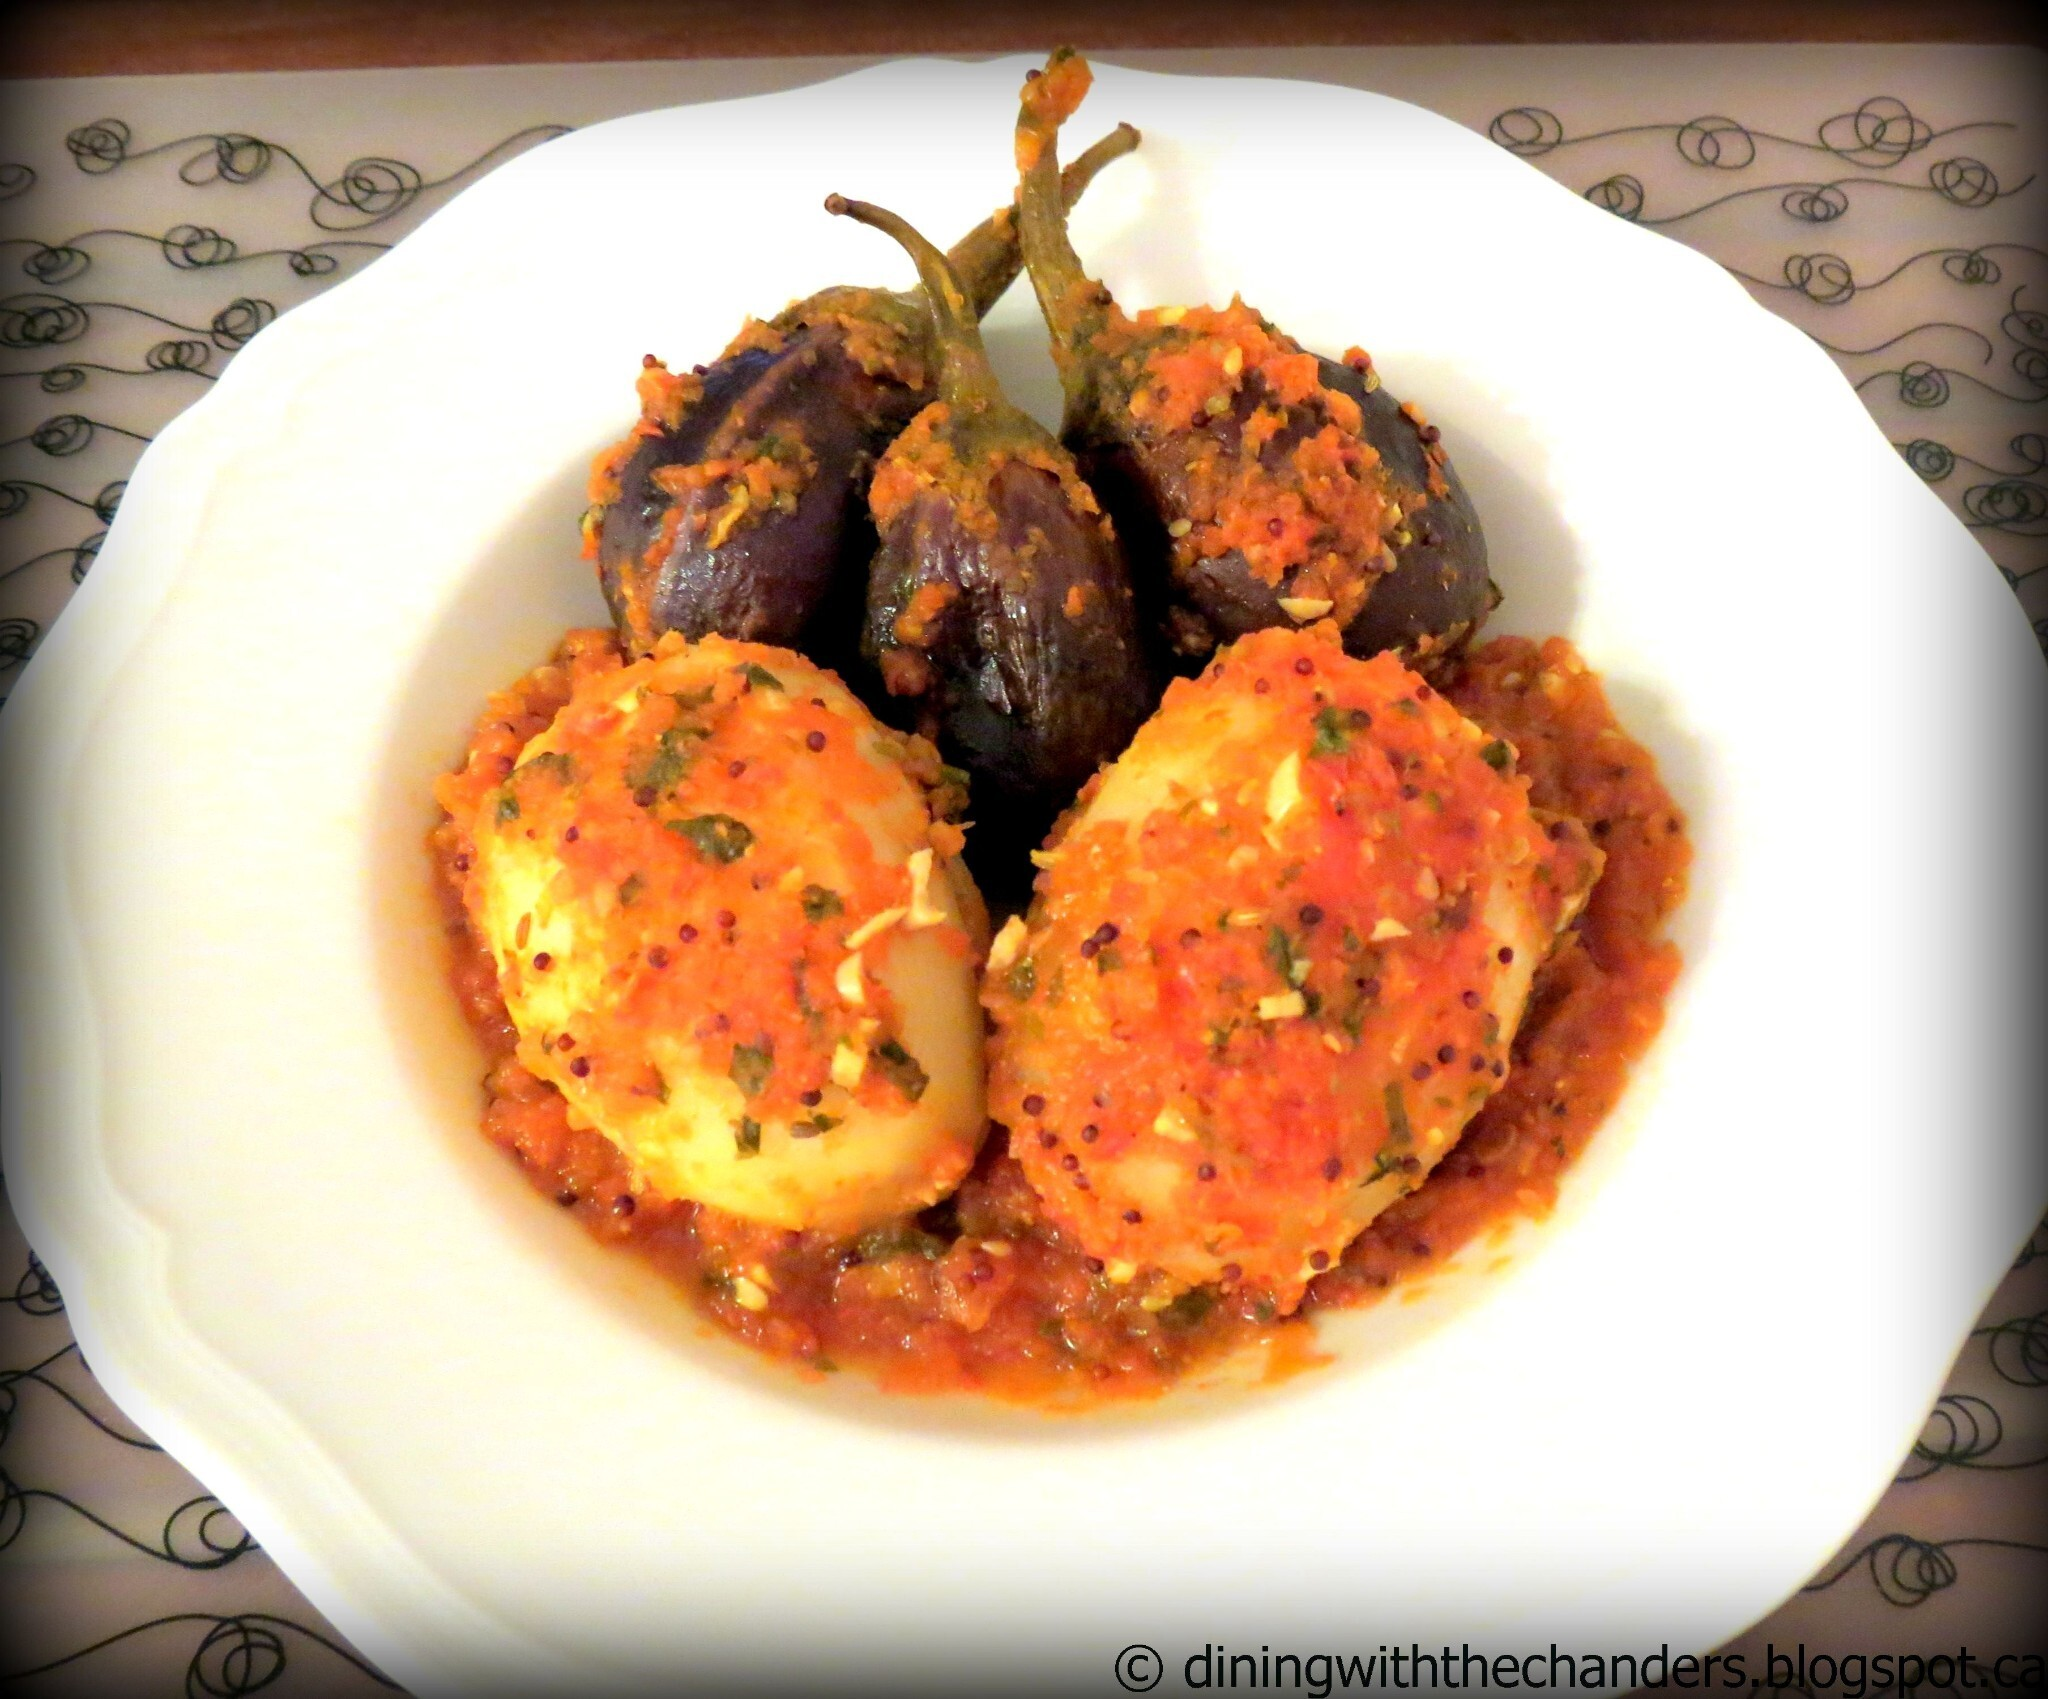 Spice Stuffed & Baked, Eggplant and Potatoes